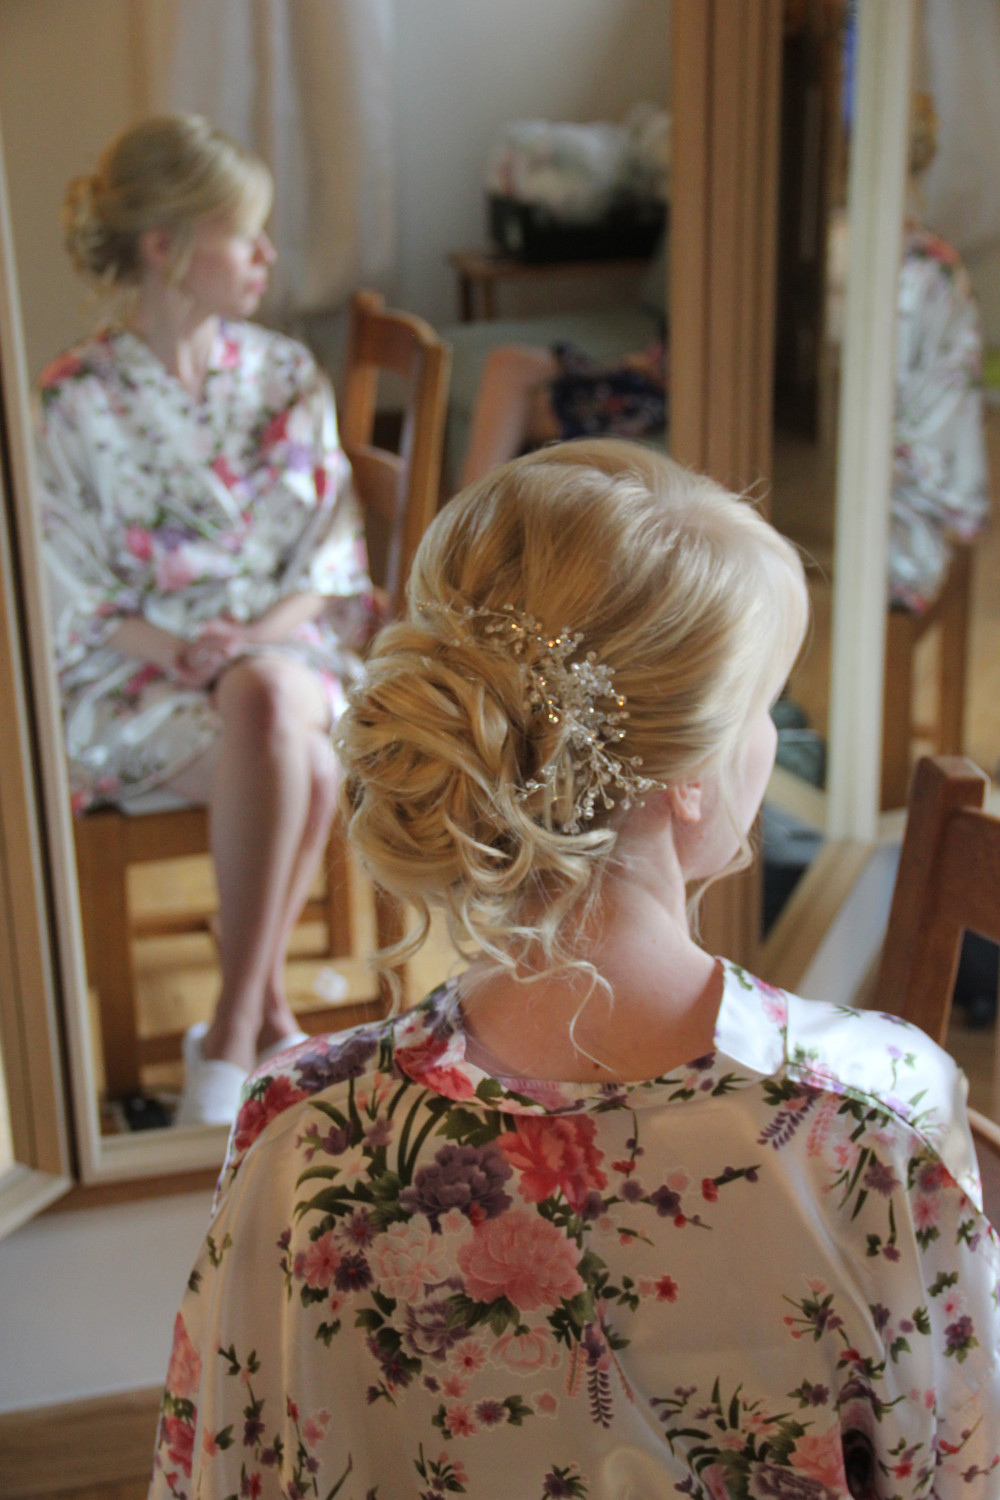 A gorgeous soft up do on fine textured hair. I used padding to lift out and create that lovely bun shape - Make Me Bridal Artist: Wedding hair by Tara. #hairup #curls #undoneupdo